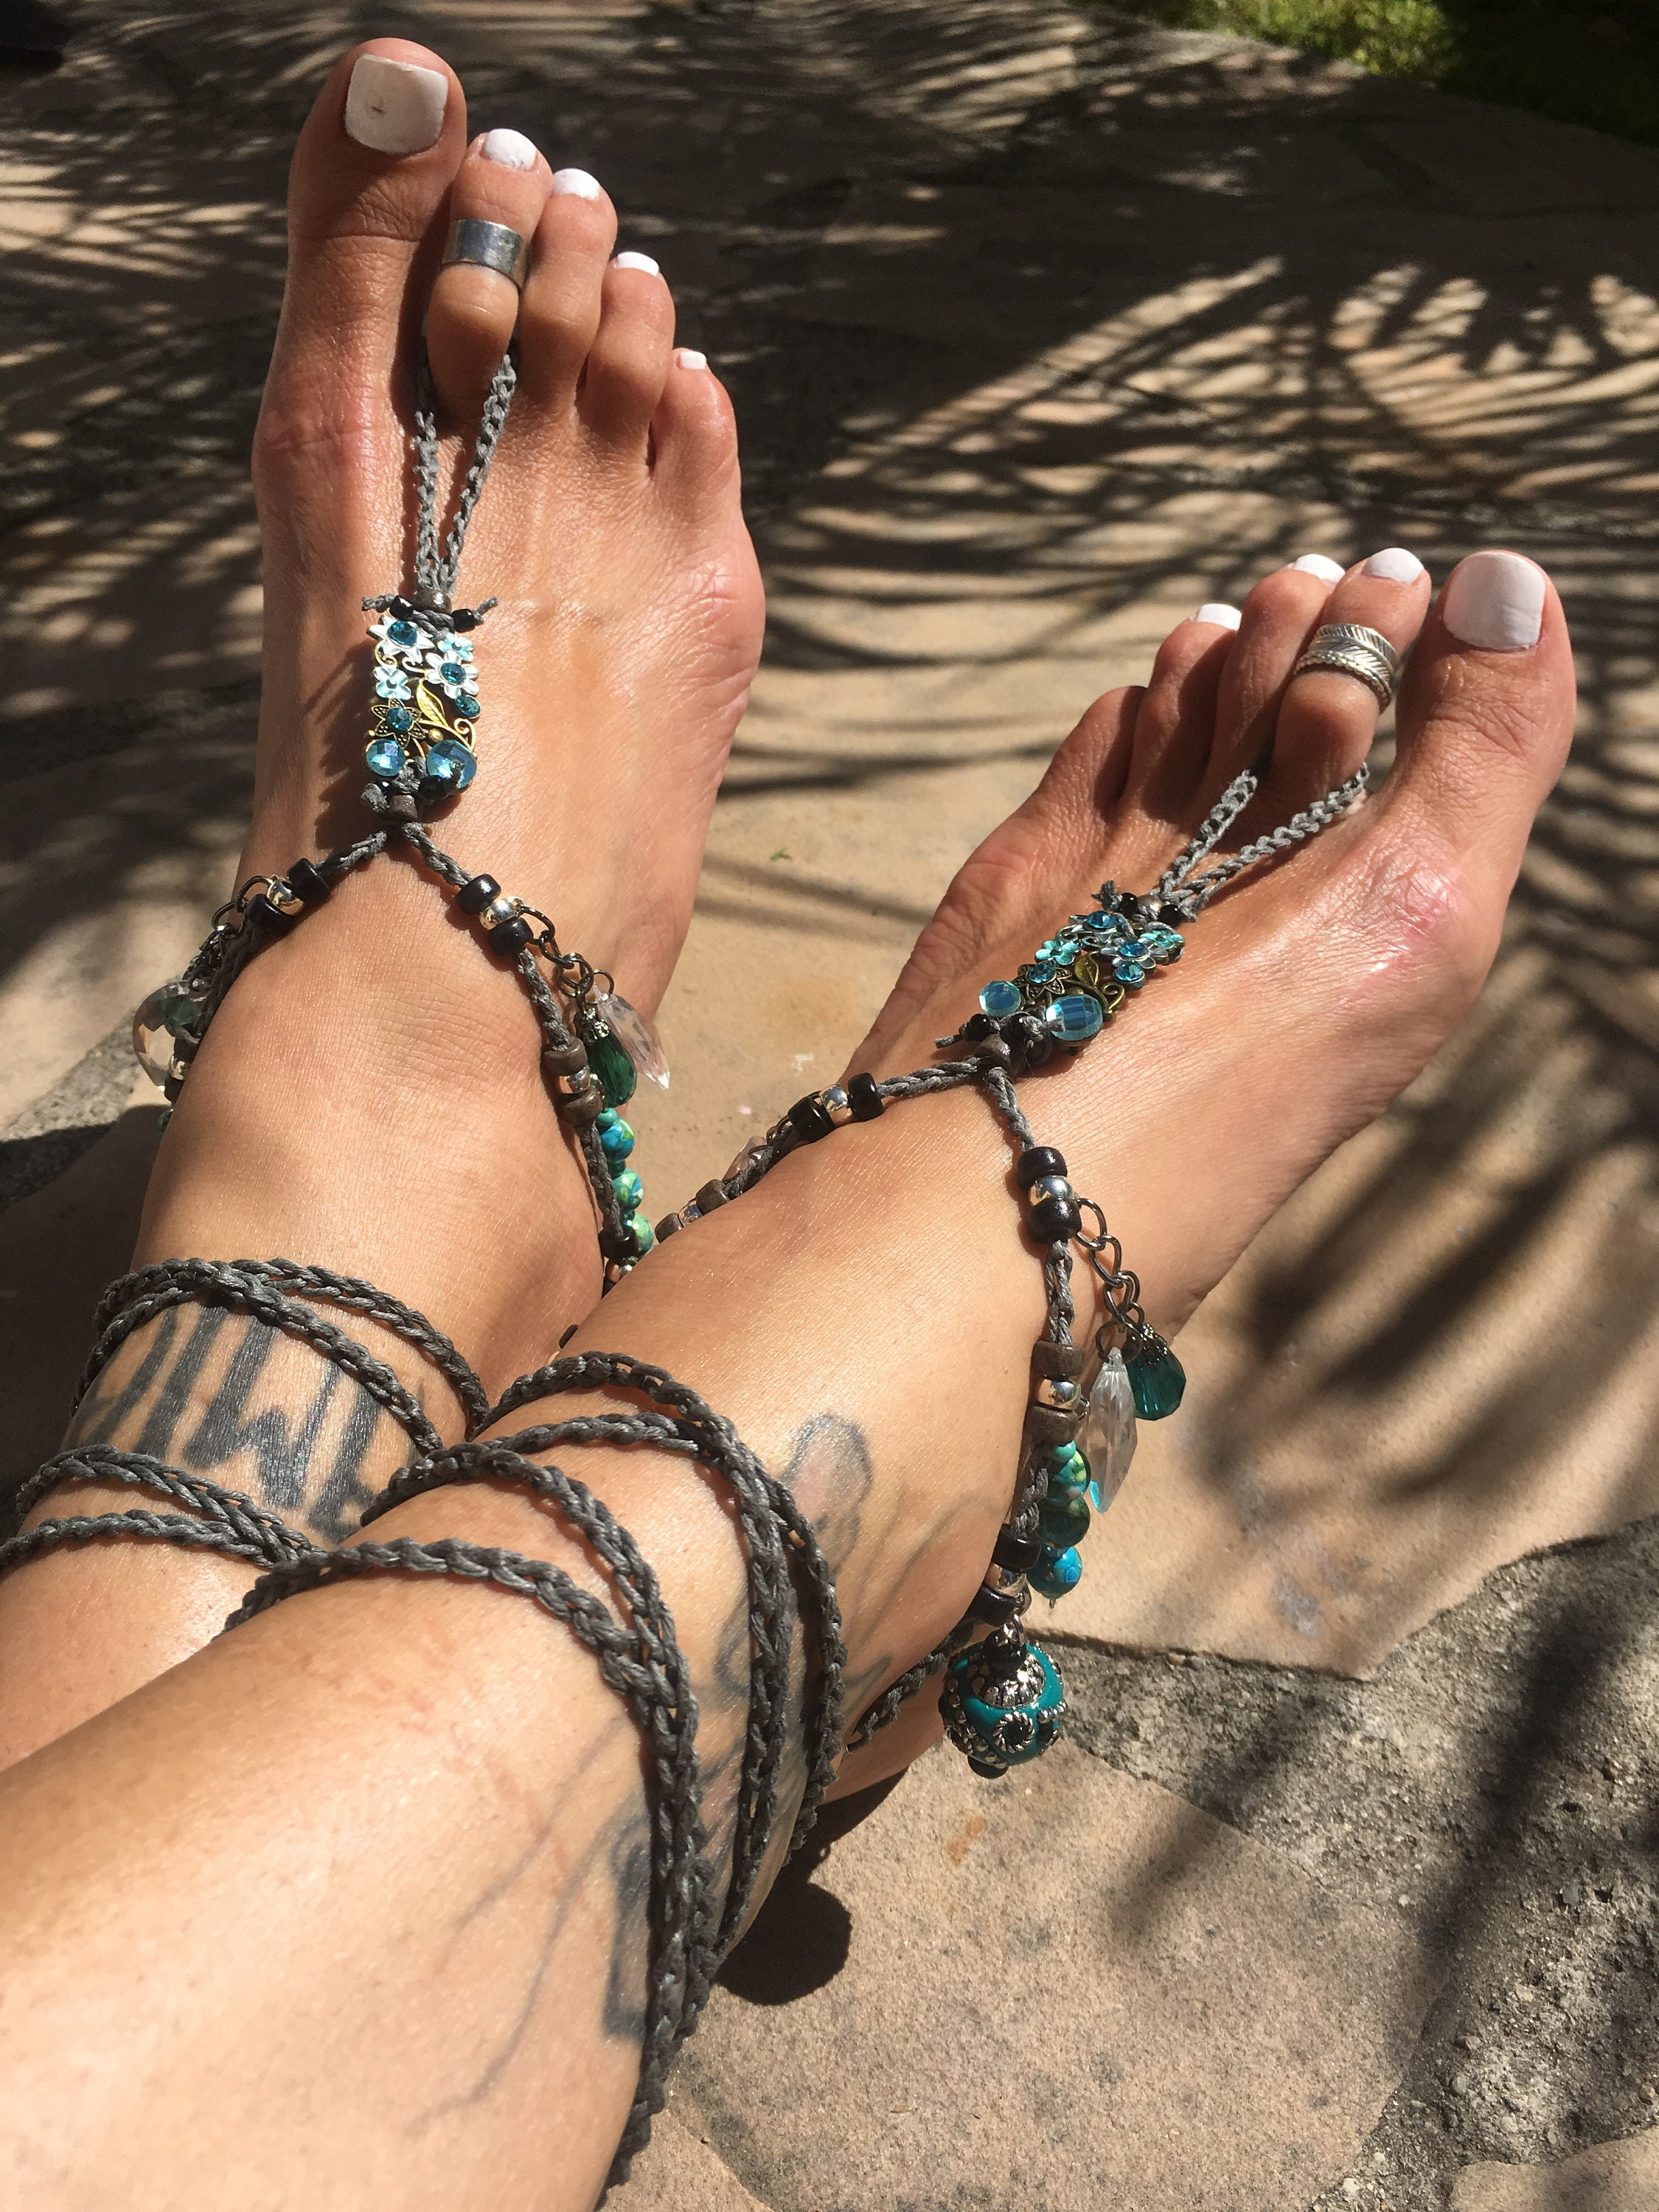 VIRGO Goddess Barefoot Sandals gypsy naked shoes boho foot accessory boho shoes bohemian jewelry hippie belly dance feet beach yoga earthing blue 9ff1e4